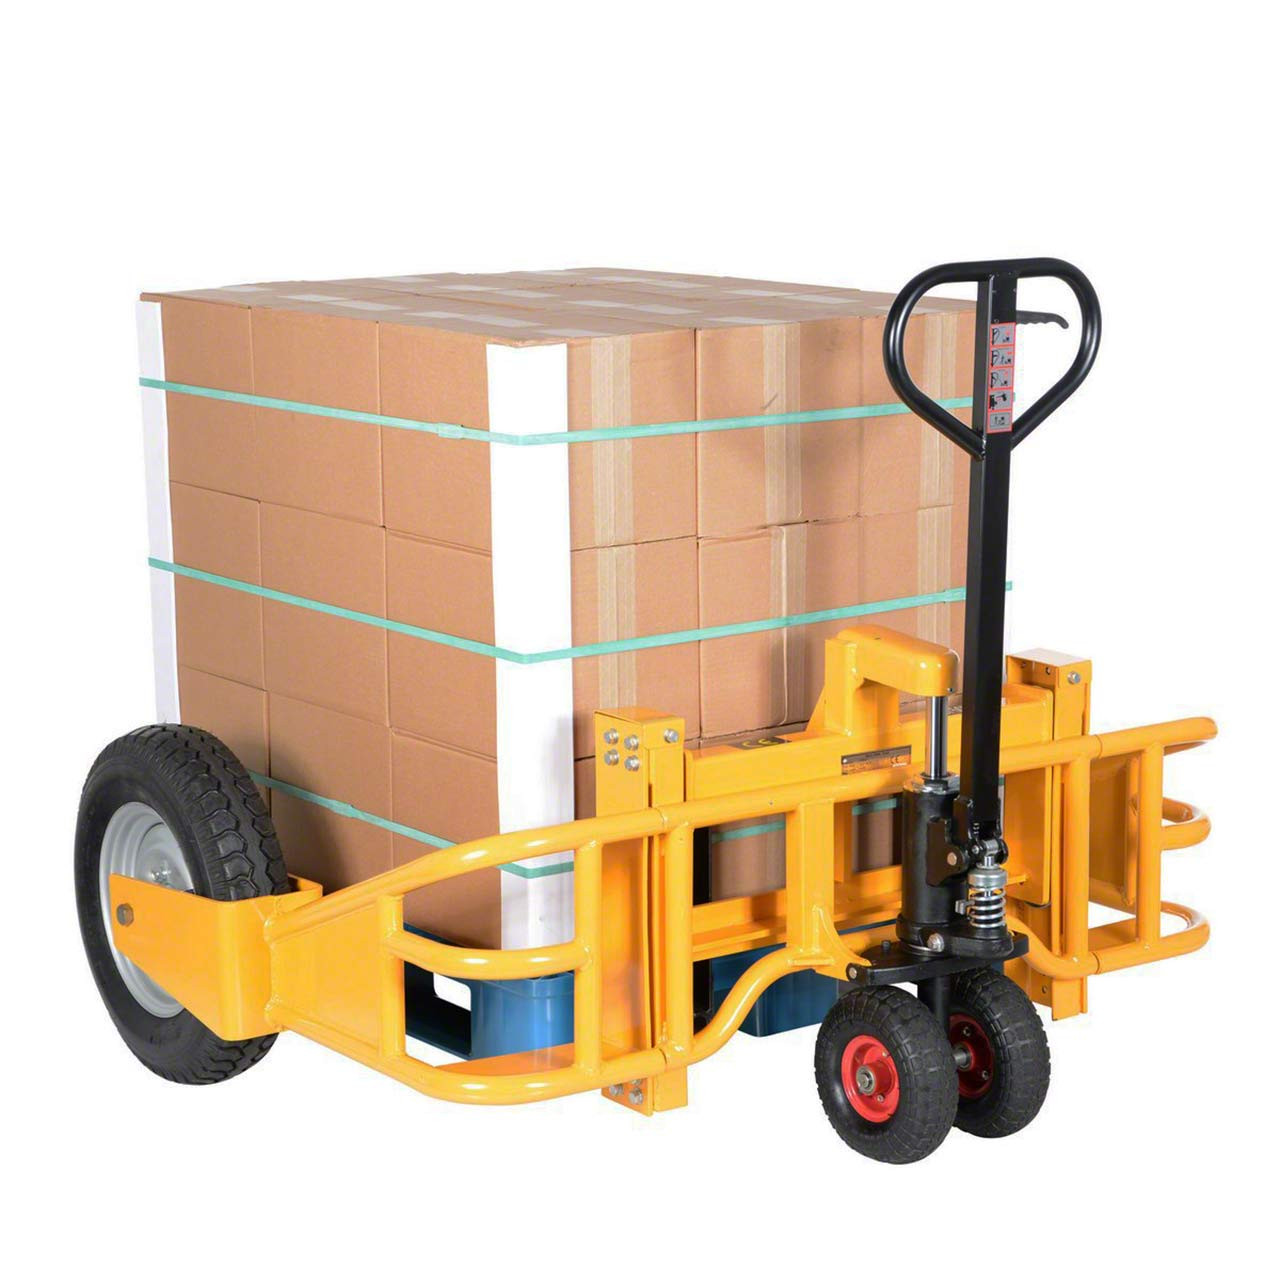 Manual All Terrain Pallet Jack With Load Back View